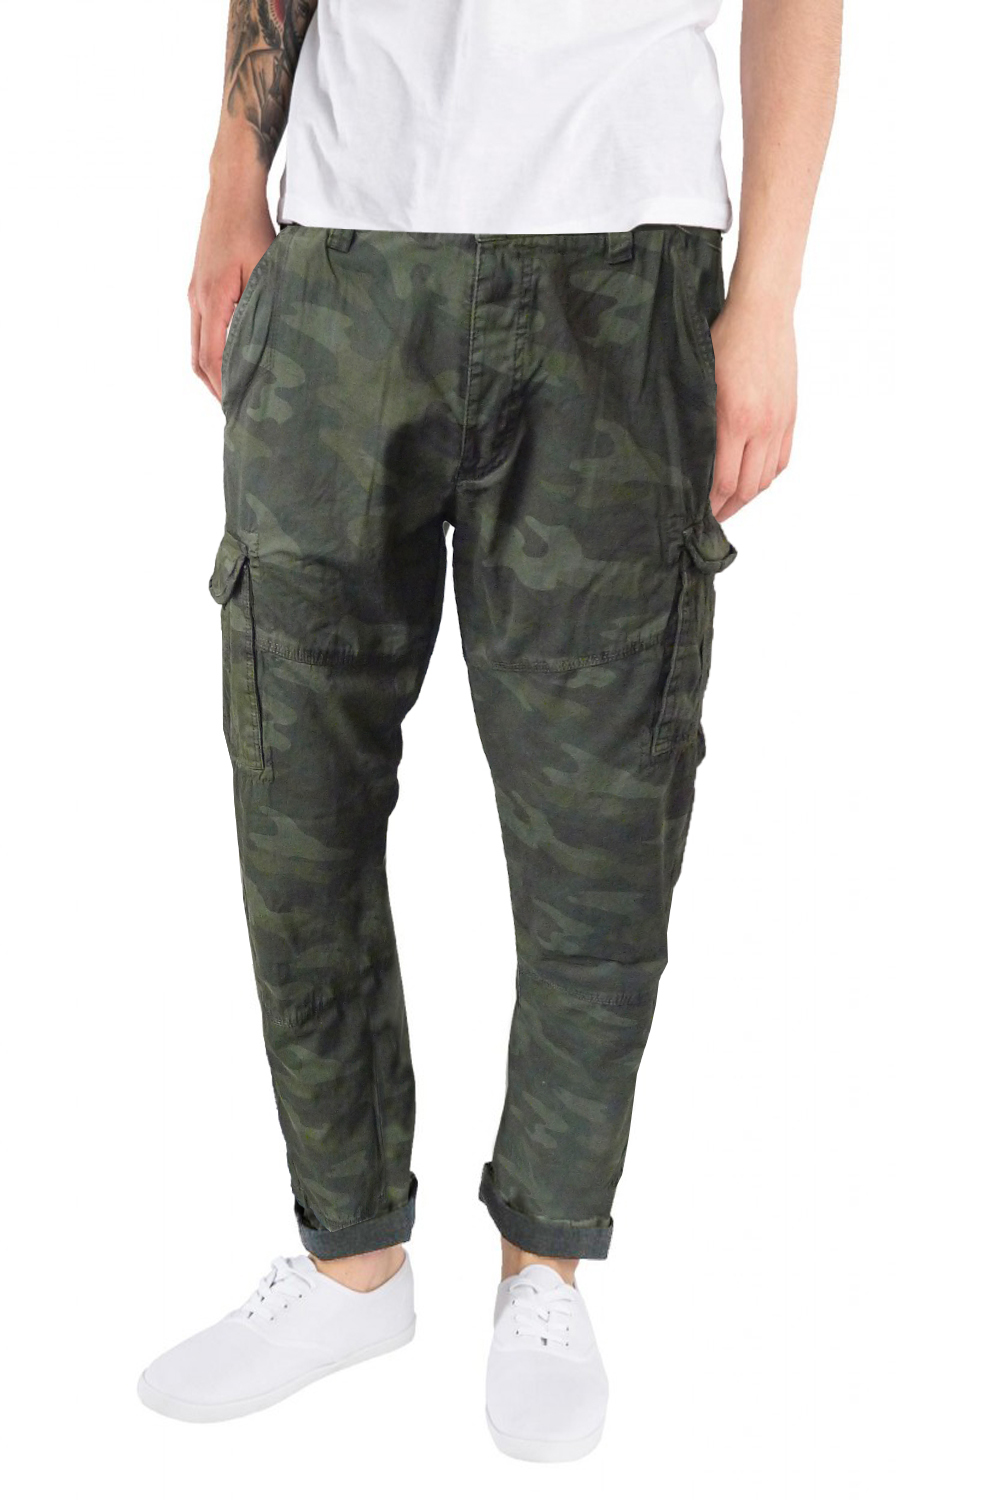 Both BDU Pants and ACU Pants are a favorite for tactical teams, police and security, emt, and anyone who needs rugged, reliable attire. Our BDU pants and ACU pants offer ample storage space with either a six- or eight-pocket design to keep your essential tools readily available.